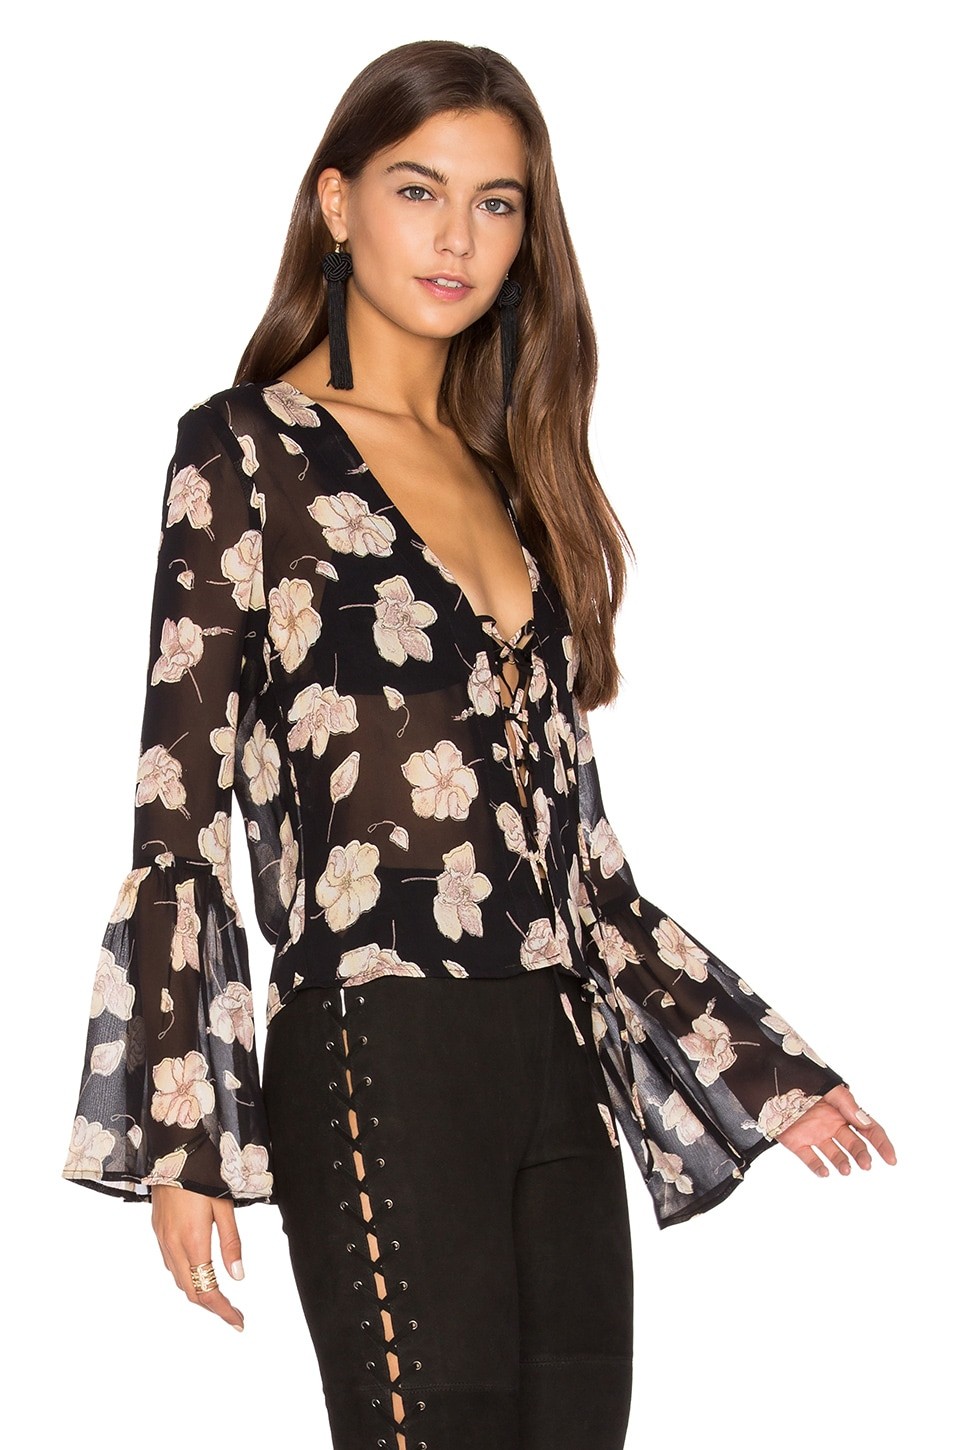 FLYNN SKYE Boston Top in Sheer Onyx